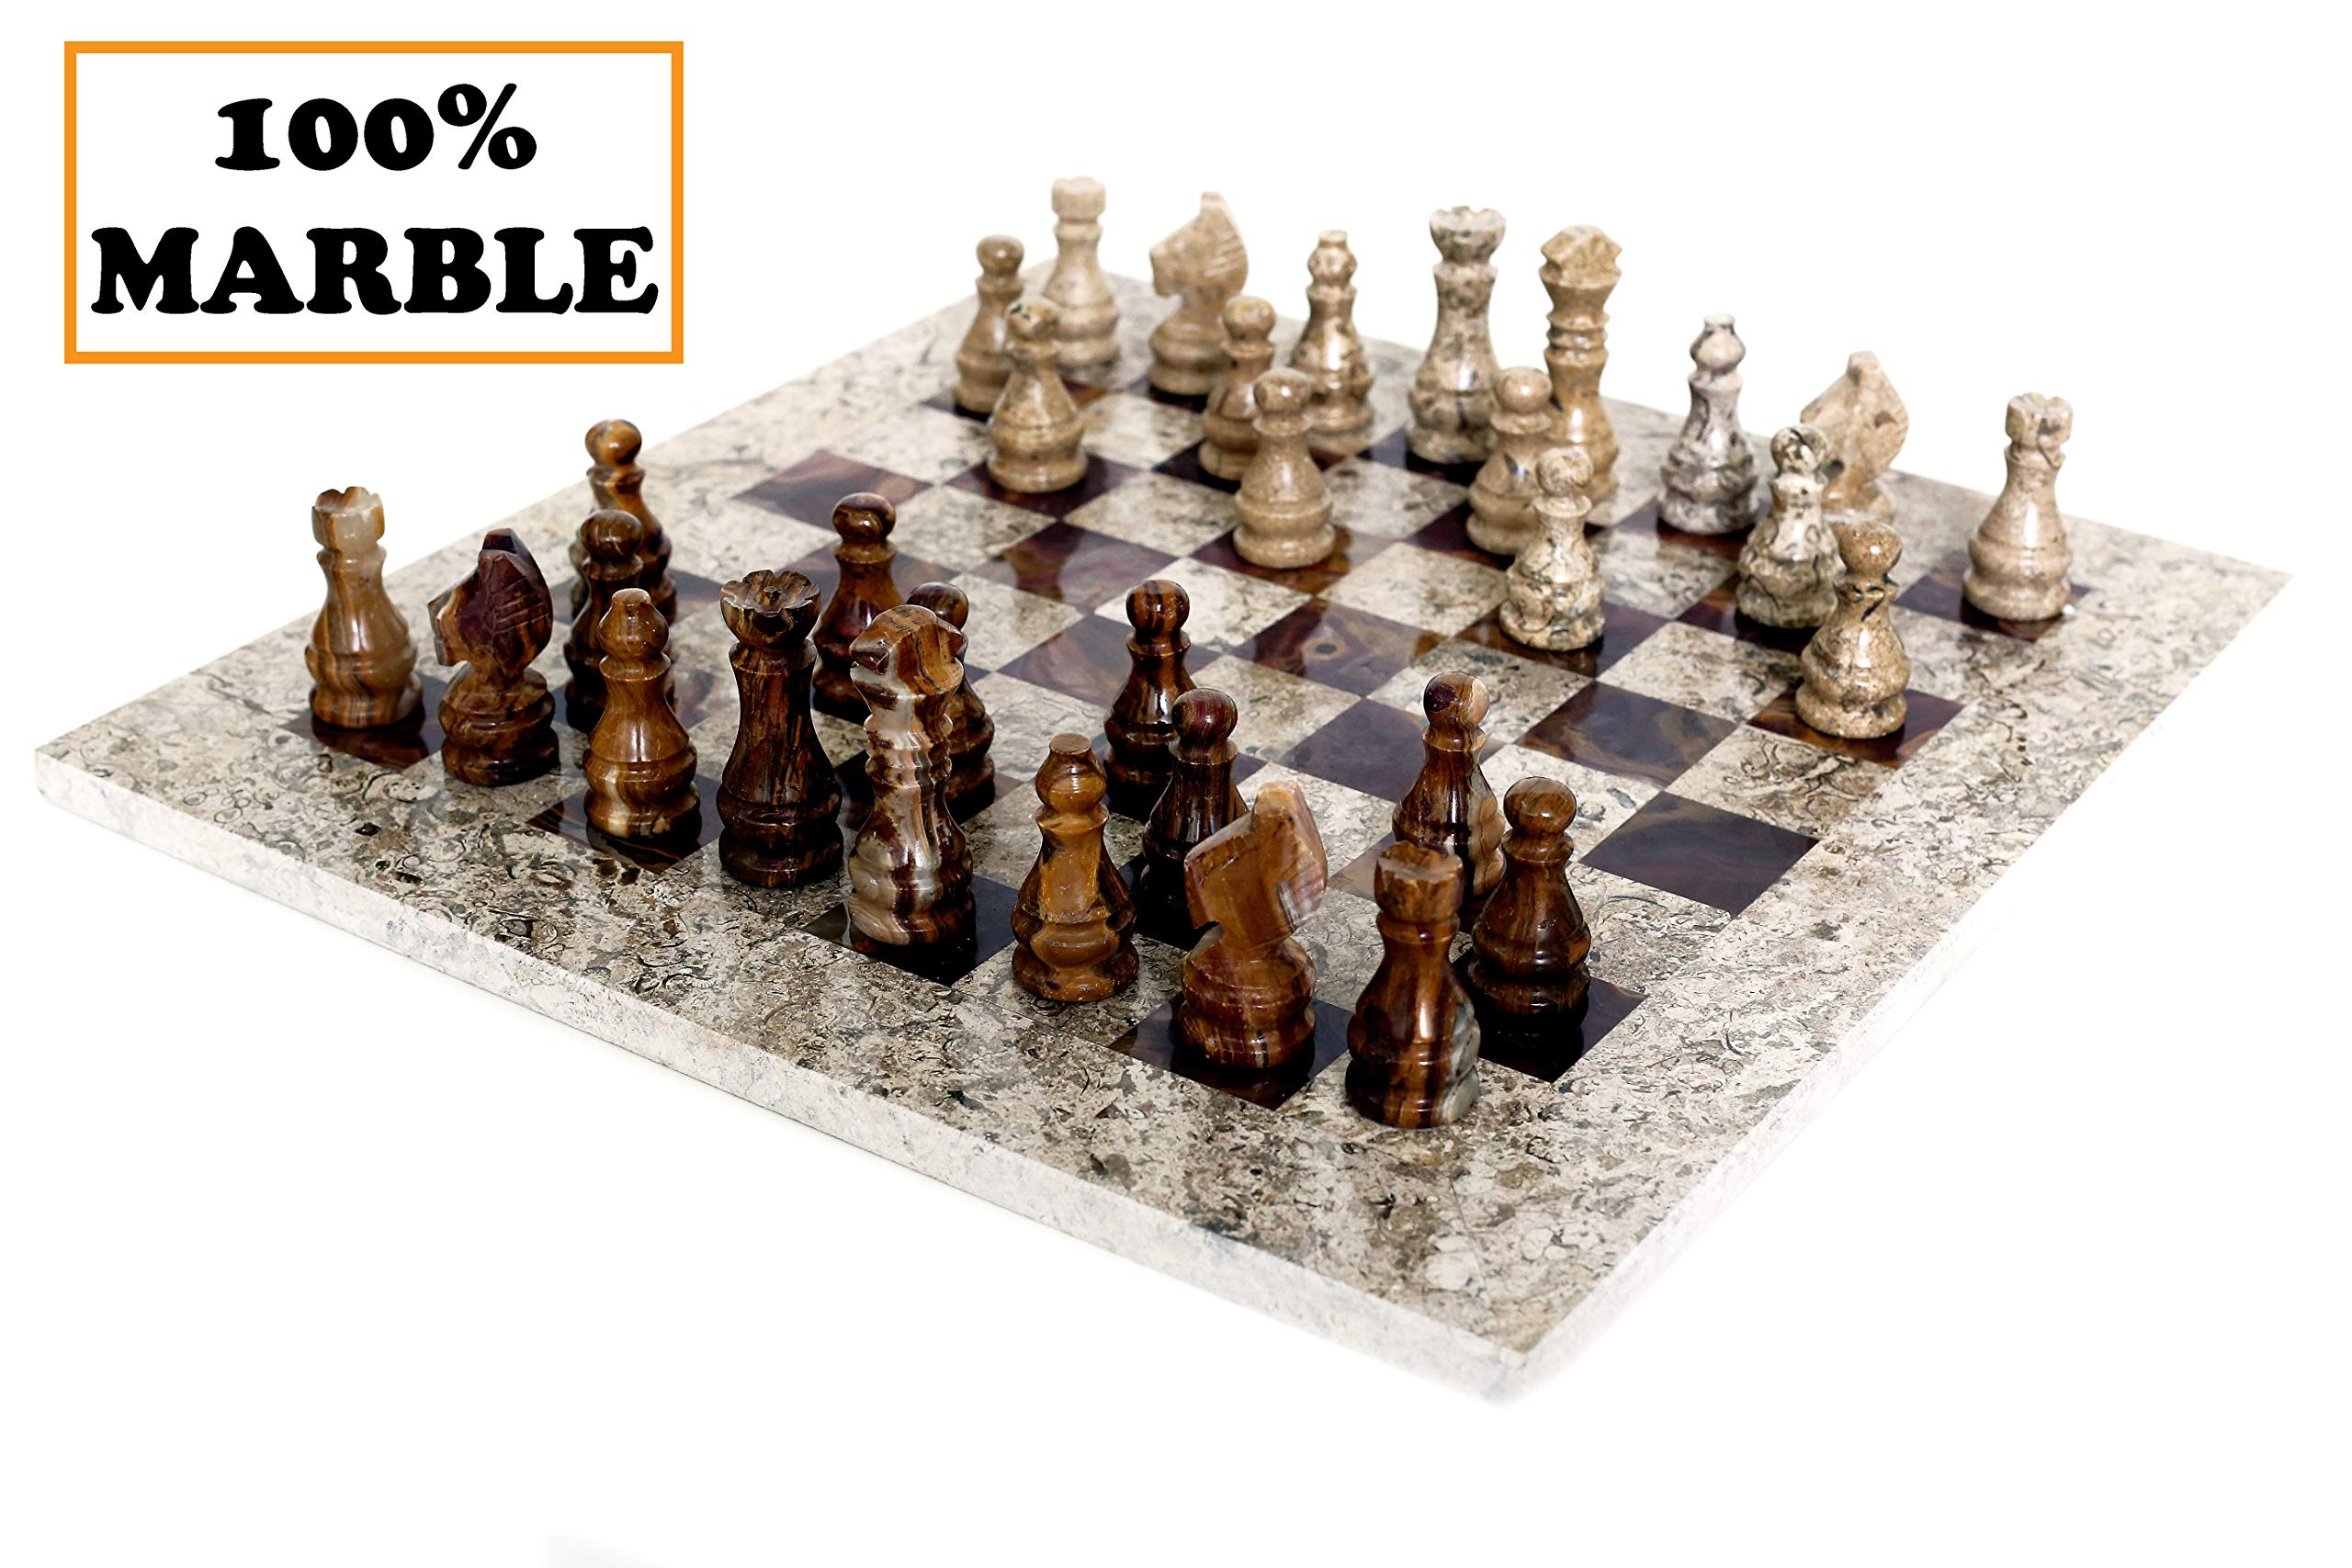 RADICALn 16 Inches Fossil Coral and Dark Brown Weighted Handmade Marble Most Popular Chess Board Games Set - Classic Style Staunton Home Decor Chess Sets - Non Checker Non Go Non Backgammon